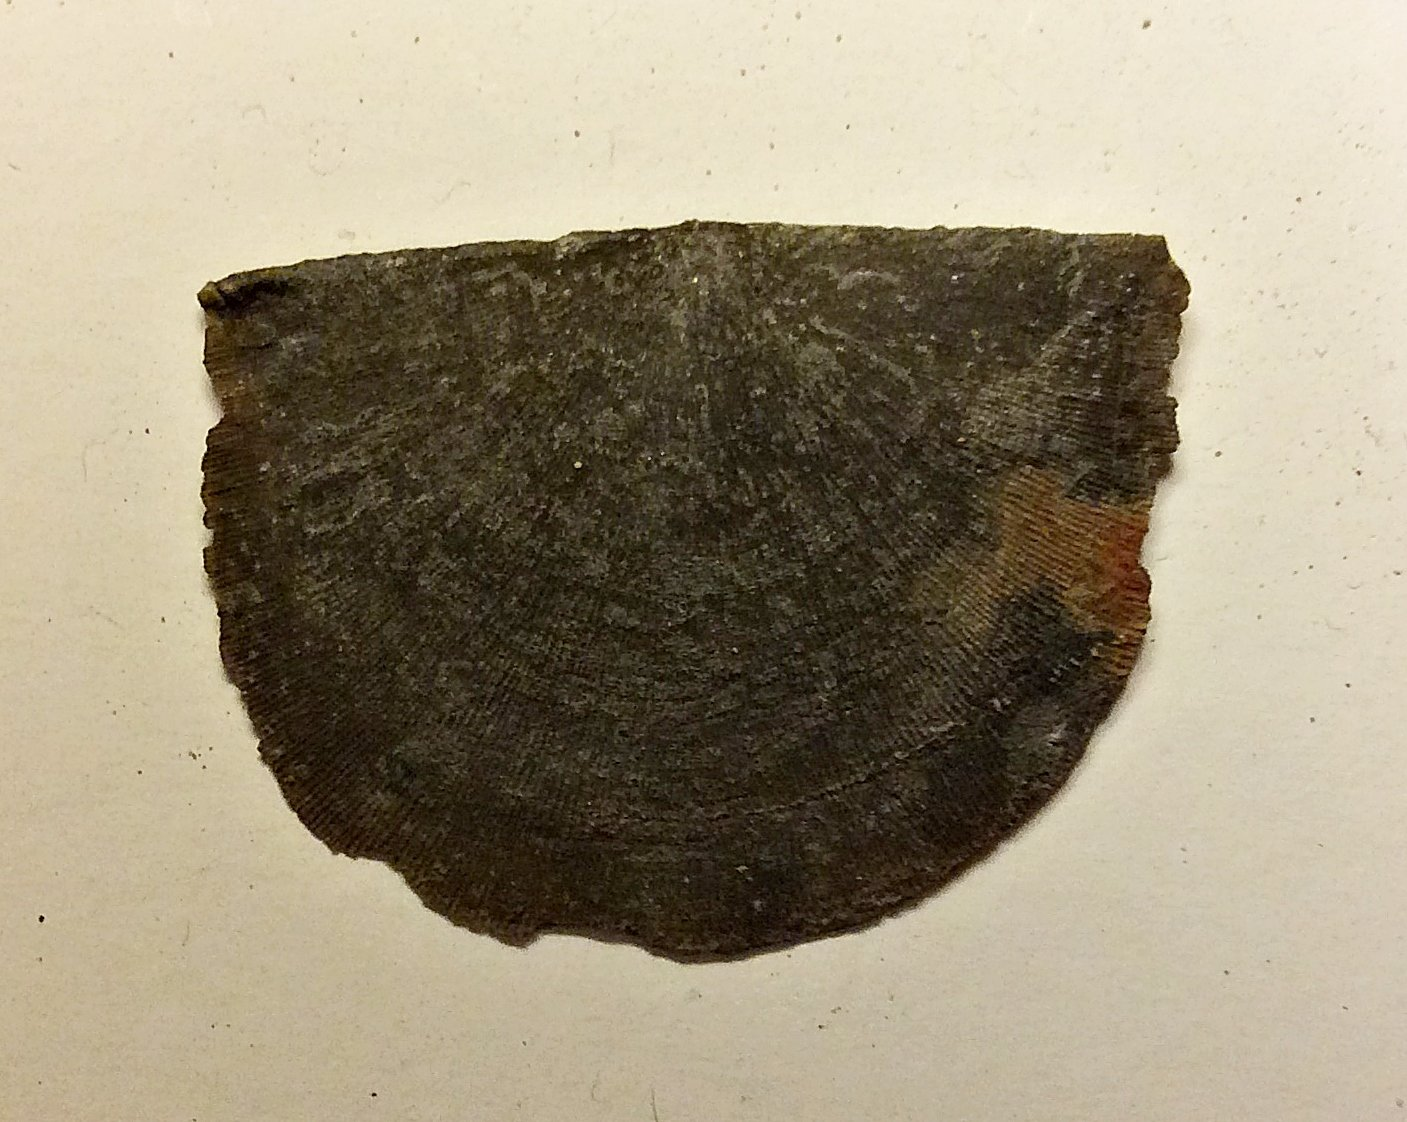 Strophomenid Brachiopod from Deep Springs Road